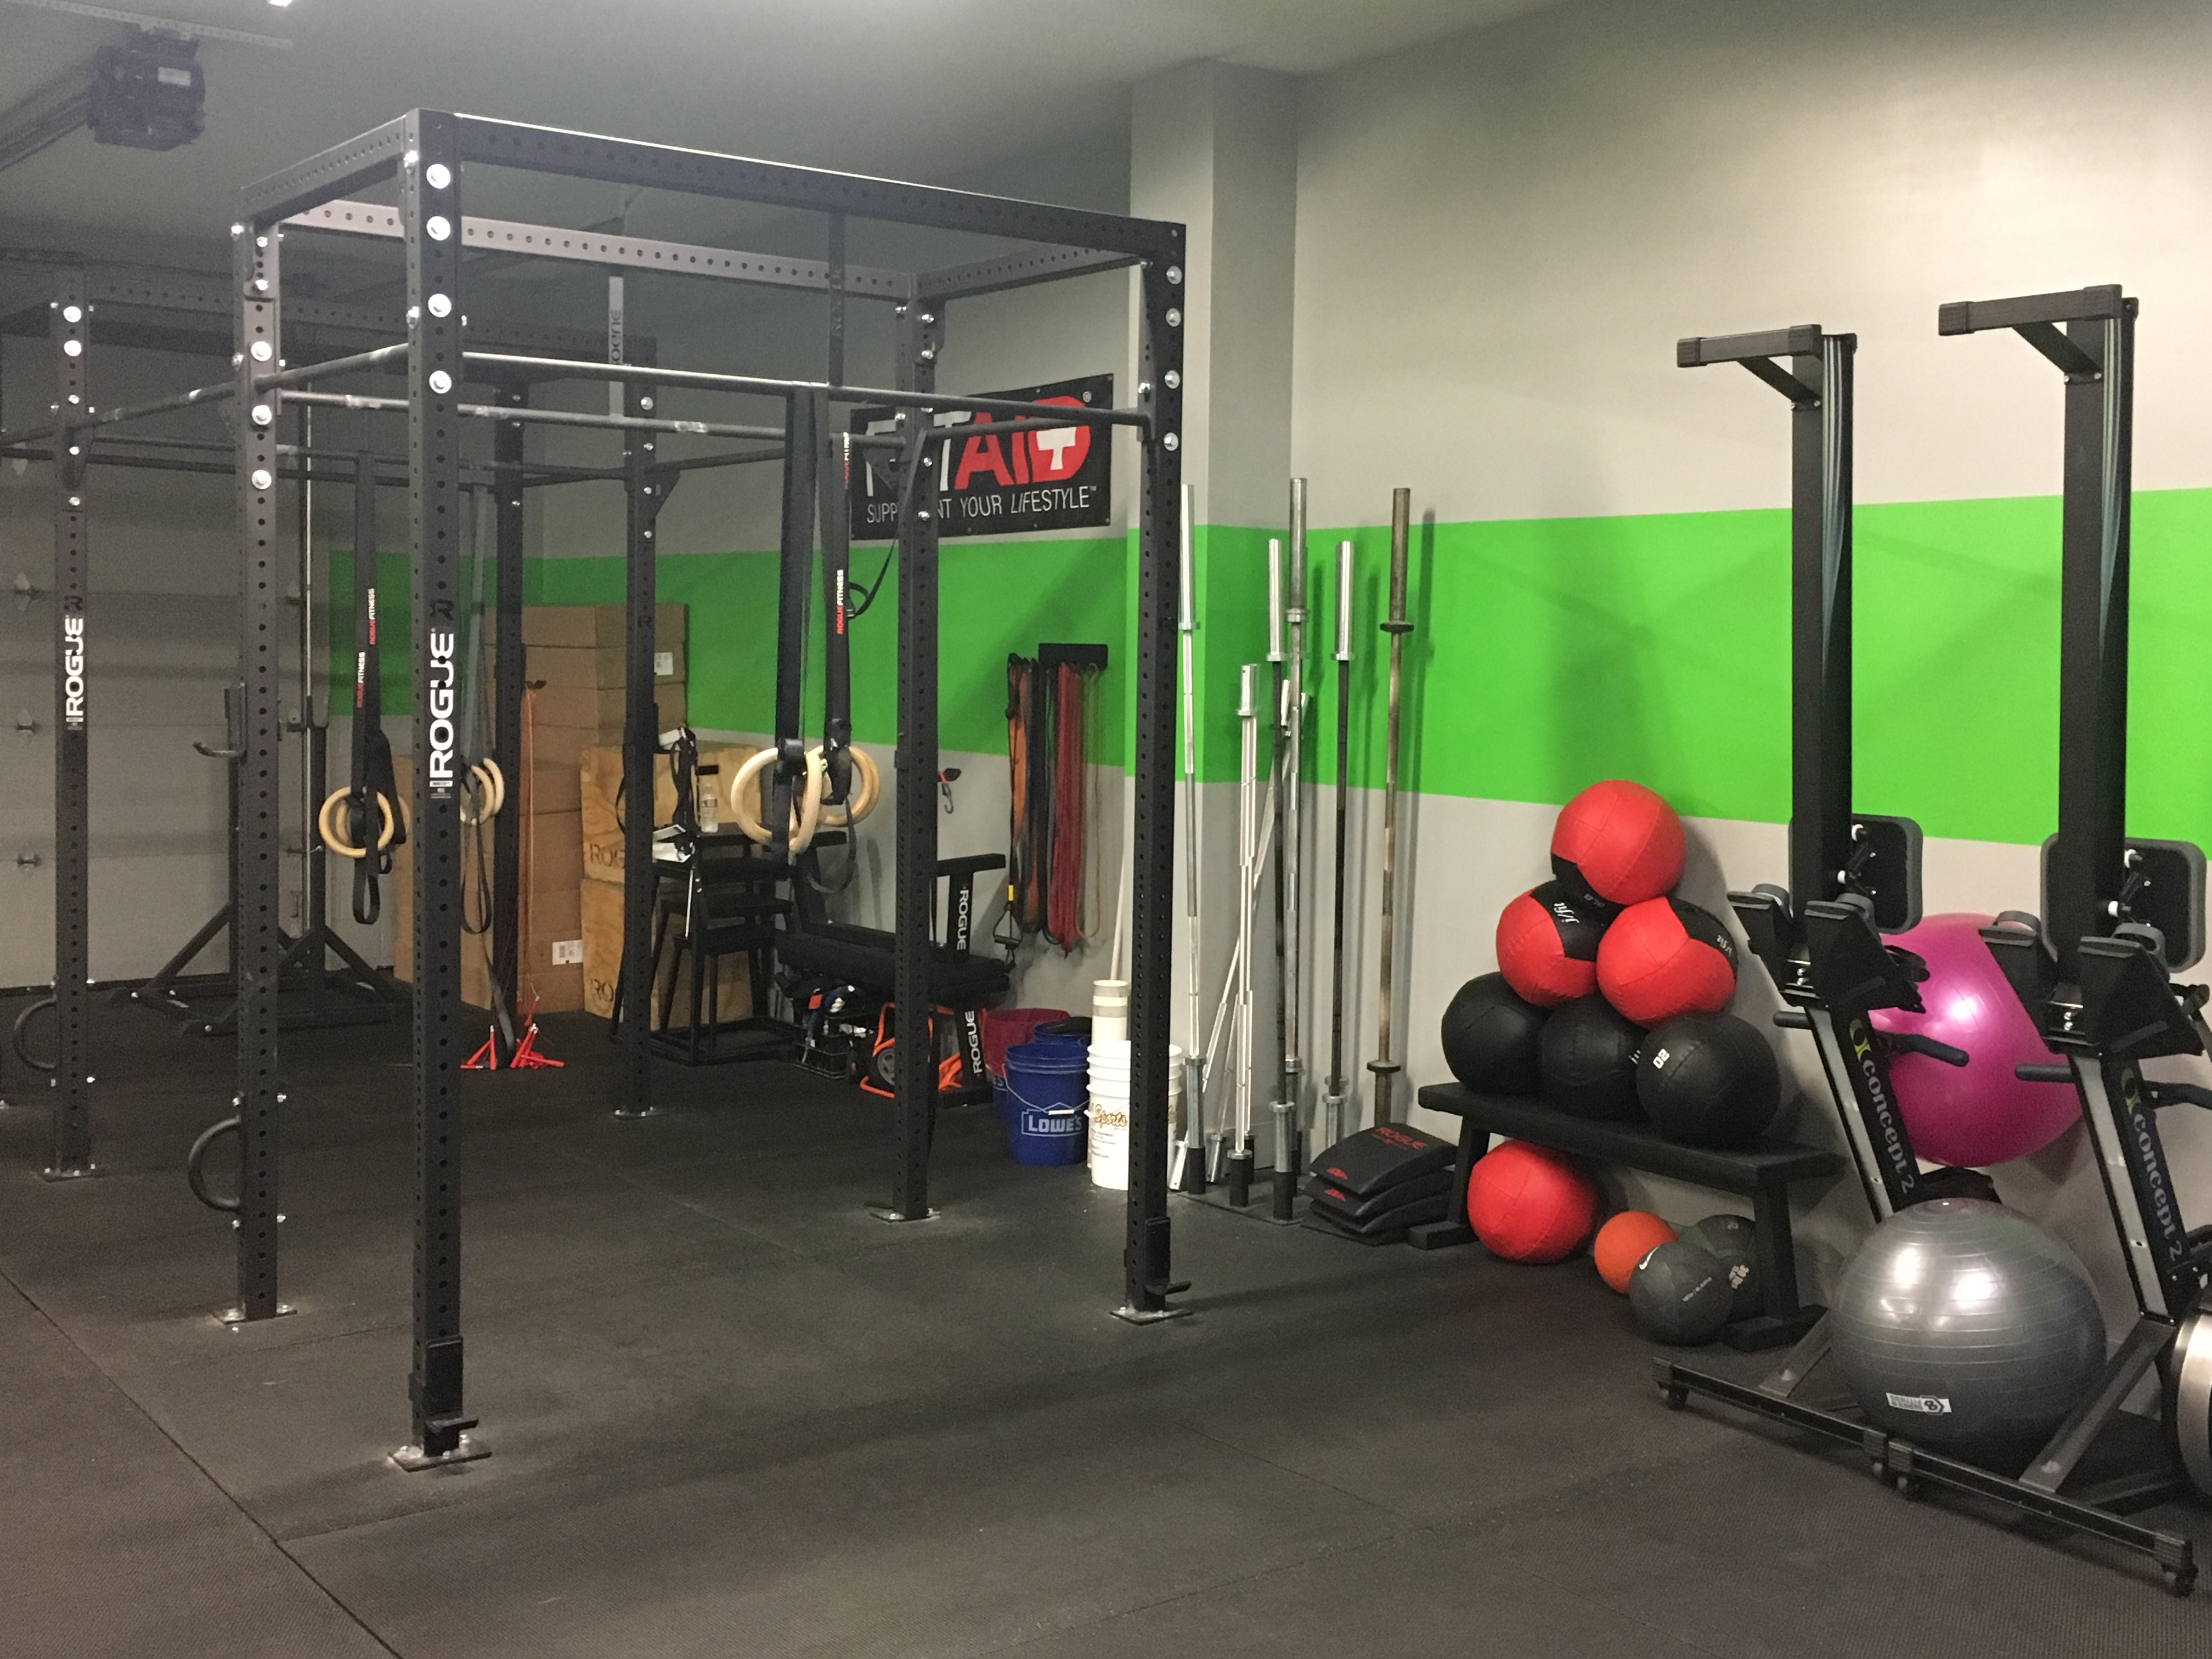 surge sports training modern athletes hitting turf equipped tunnels facility seven workout featuring areas needs clean meet equipment